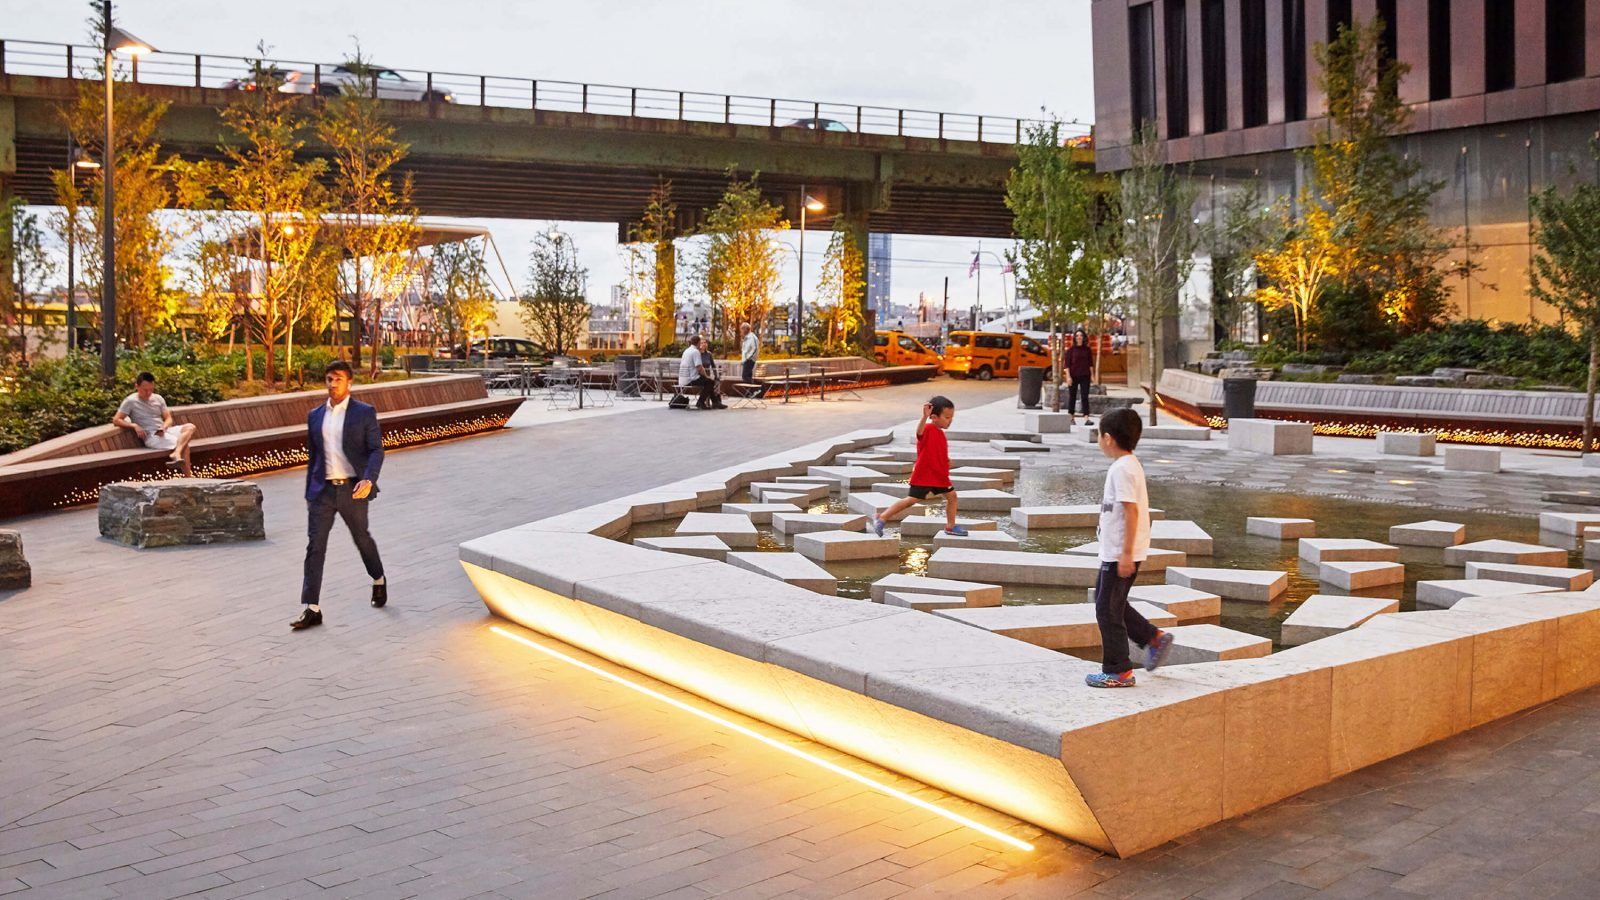 Scape Crafts a Weather-Resilient Plaza in Manhattan - Azure